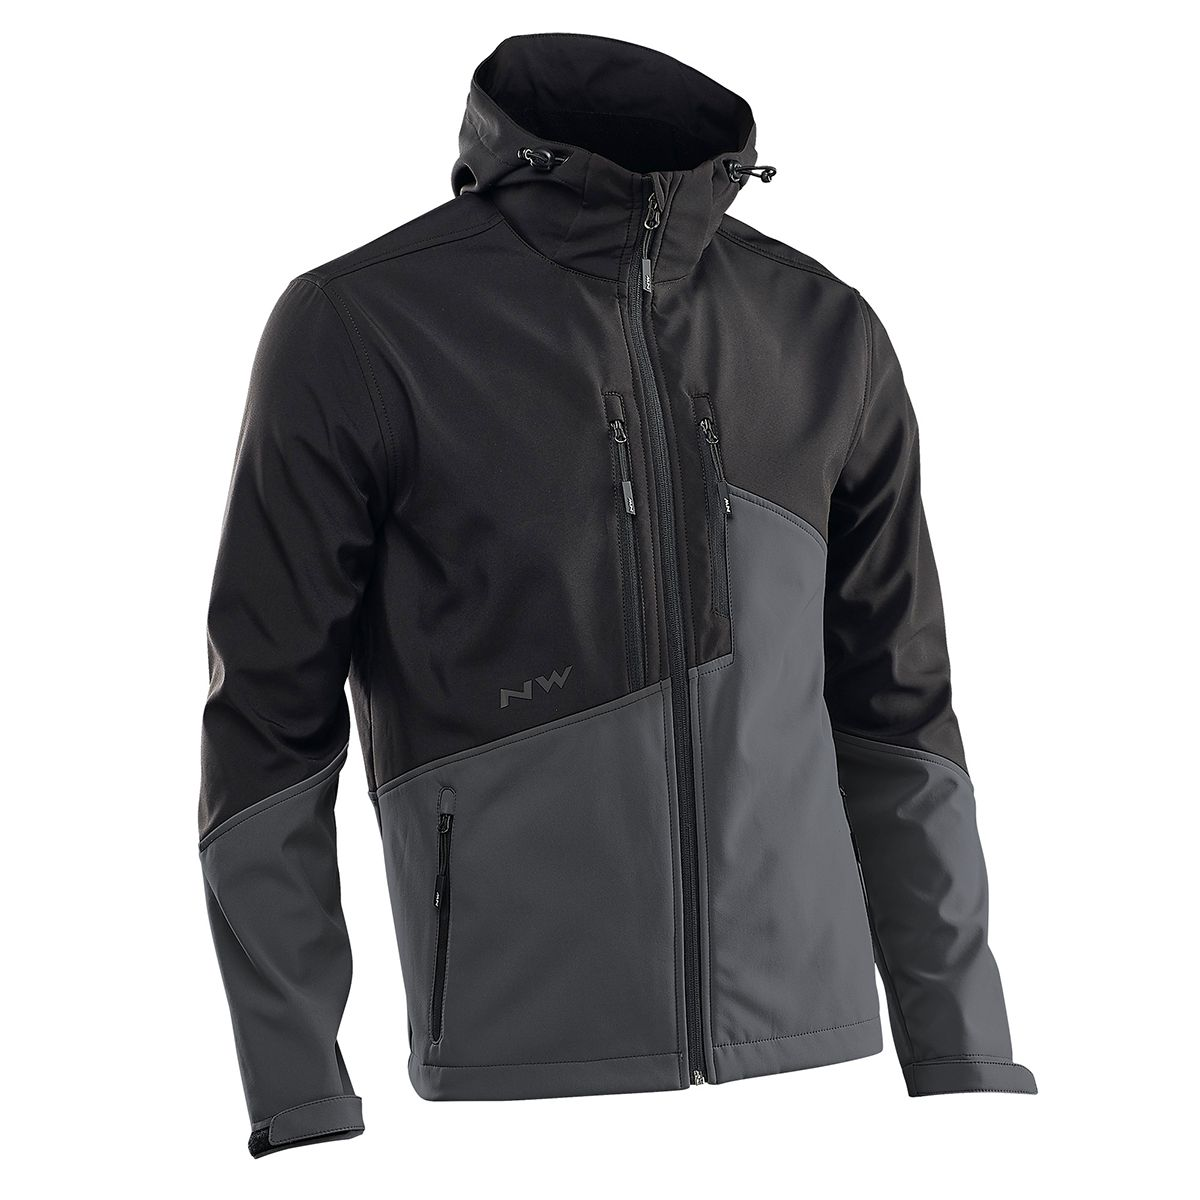 ENDURO SOFTSHELL JACKET Winterjacke